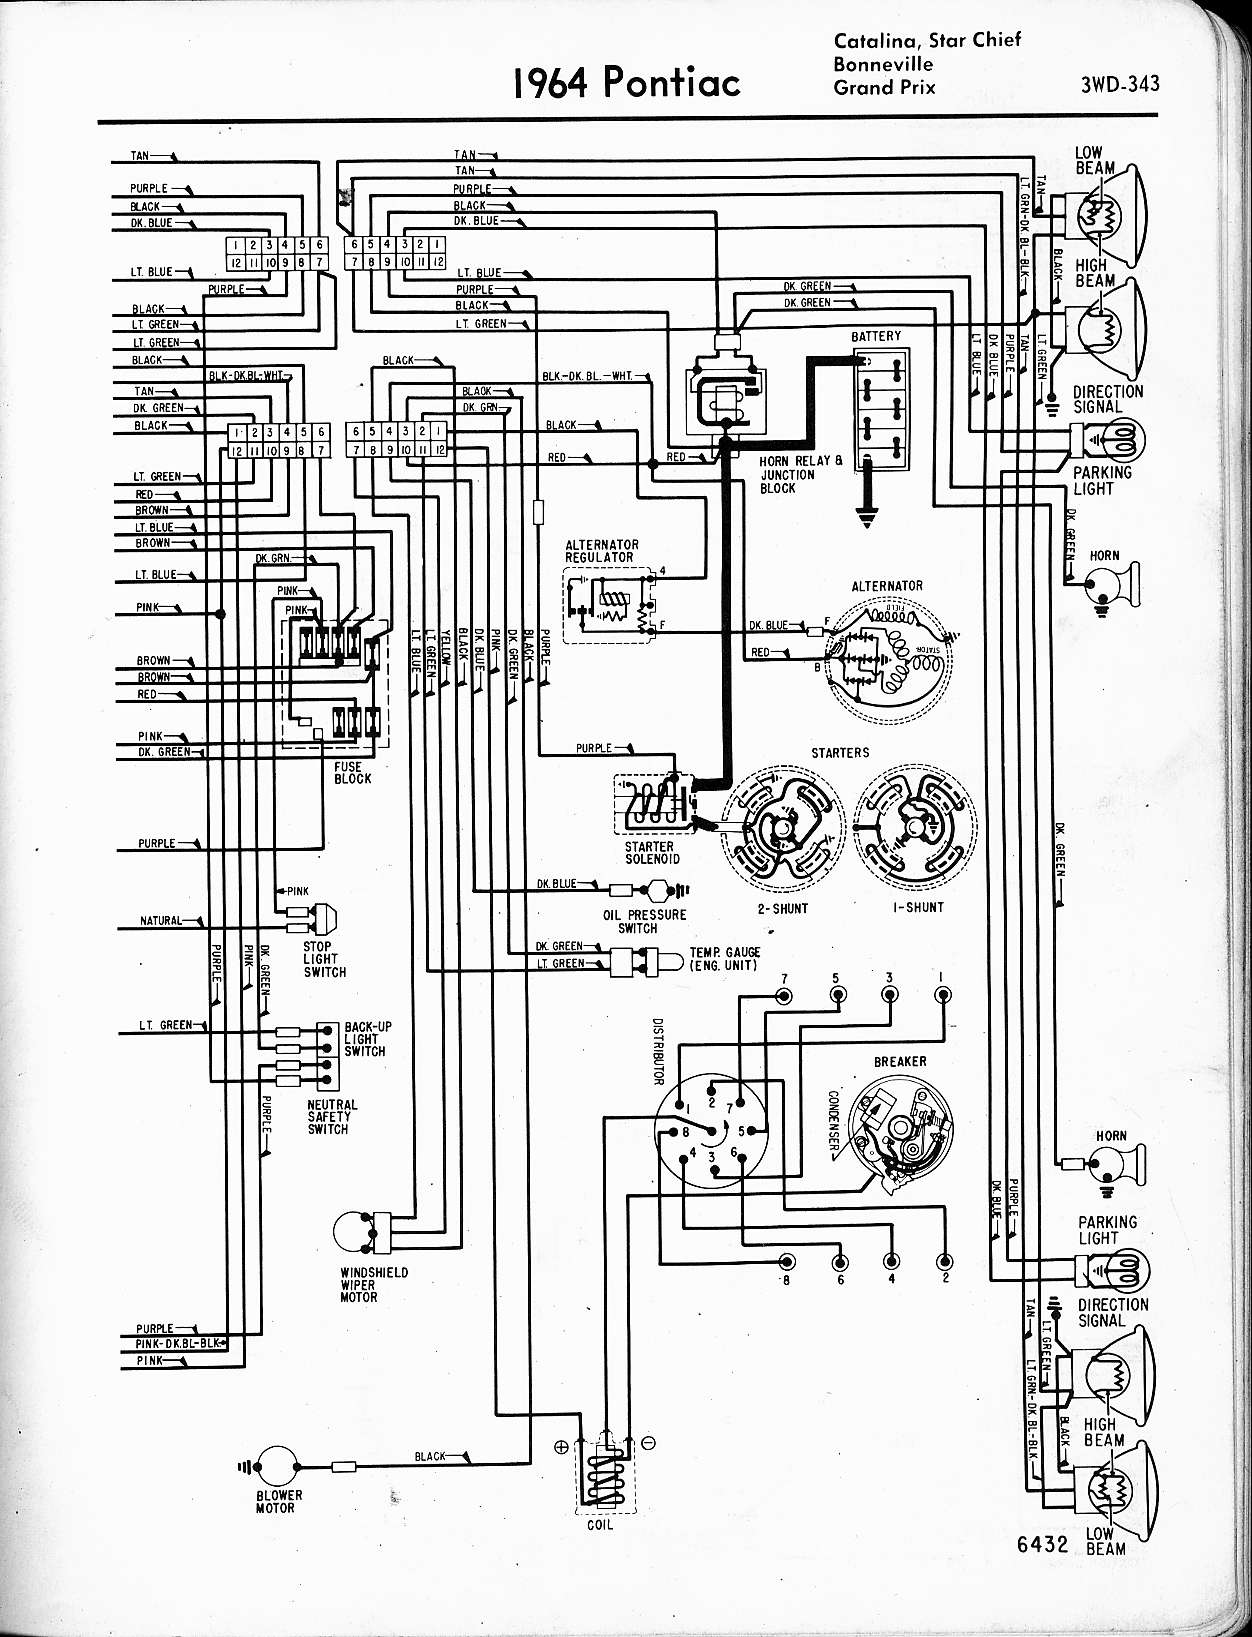 wallace racing wiring diagrams pontiac starter wiring diagram 1964  catalina, star chief, bonneville,